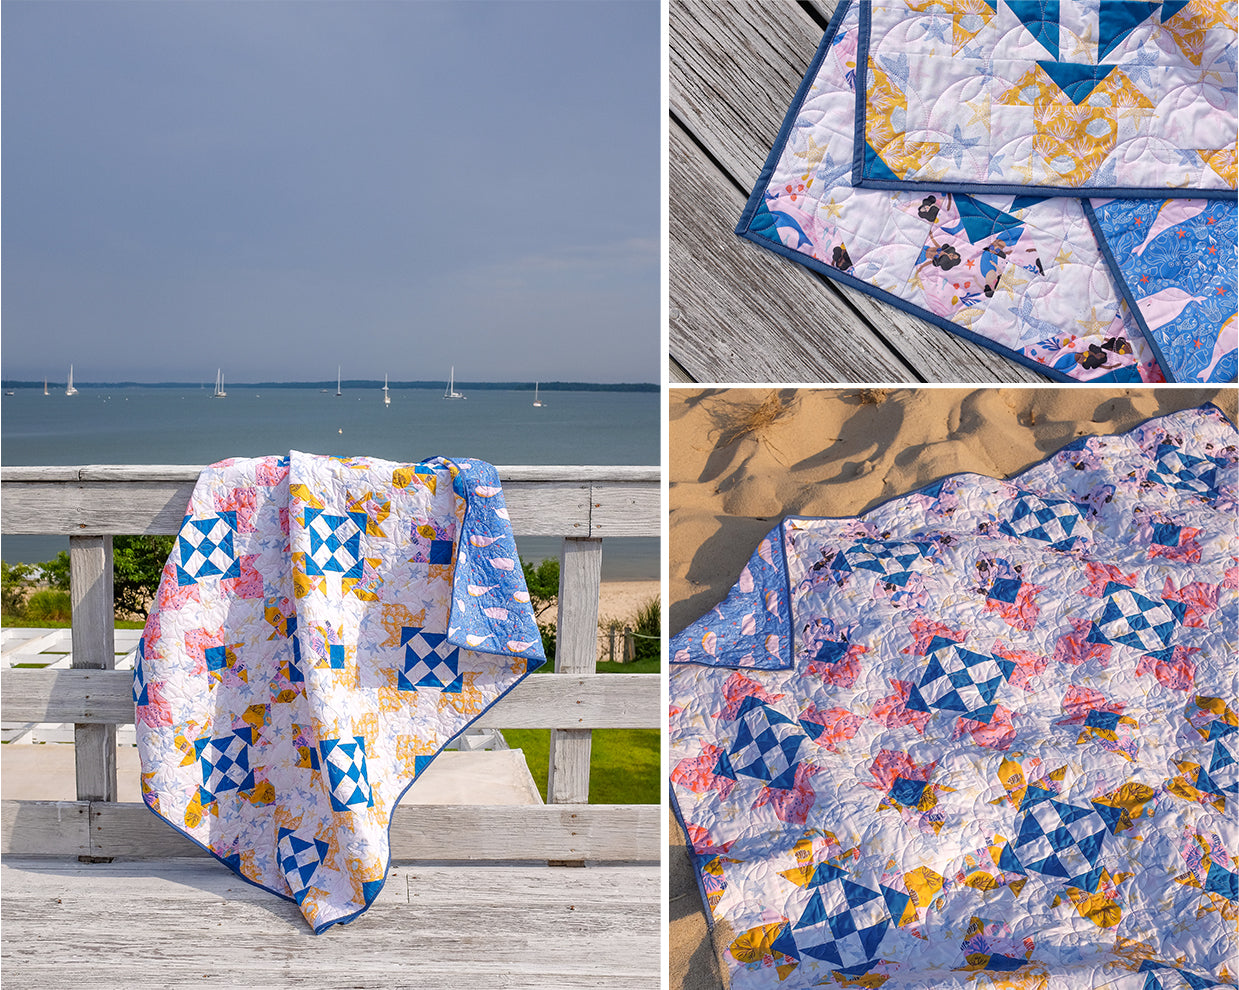 Build your no-waste flying geese, 8-in-1 half-square triangles and quick corner units skills with this free Ocean Gems quilt pattern by The Weekend Quilter for Paintbrush Studio Fabrics featuring Mable Tan Design's Under the Sea fabric collection. #freequiltpattern